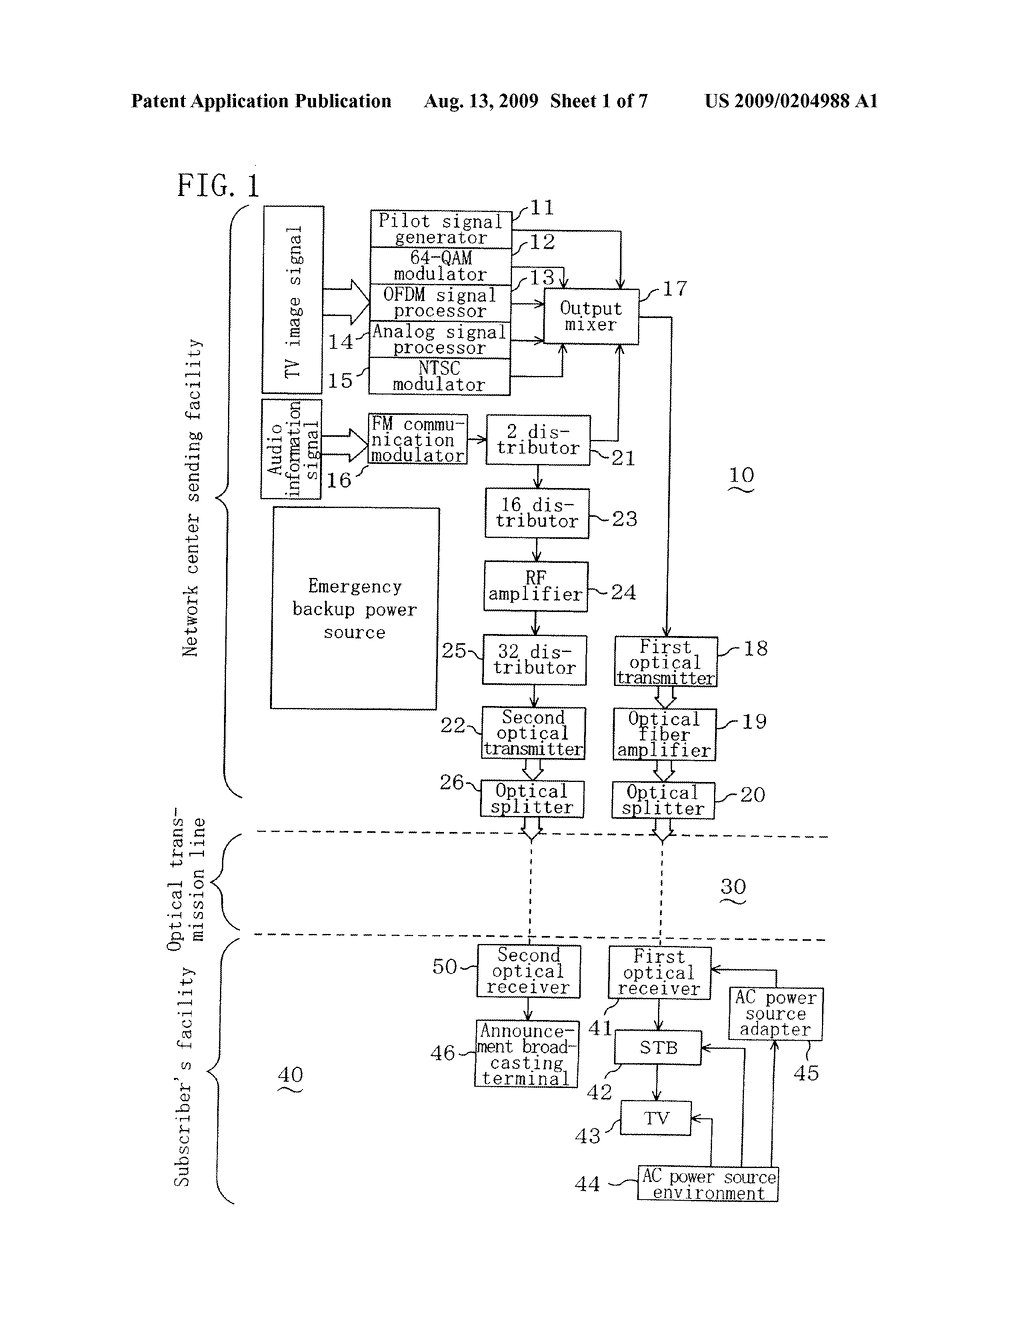 hight resolution of announcement broadcasting system announcement broadcasting optical receiver used for the announcement broadcasting system cable television broadcasting